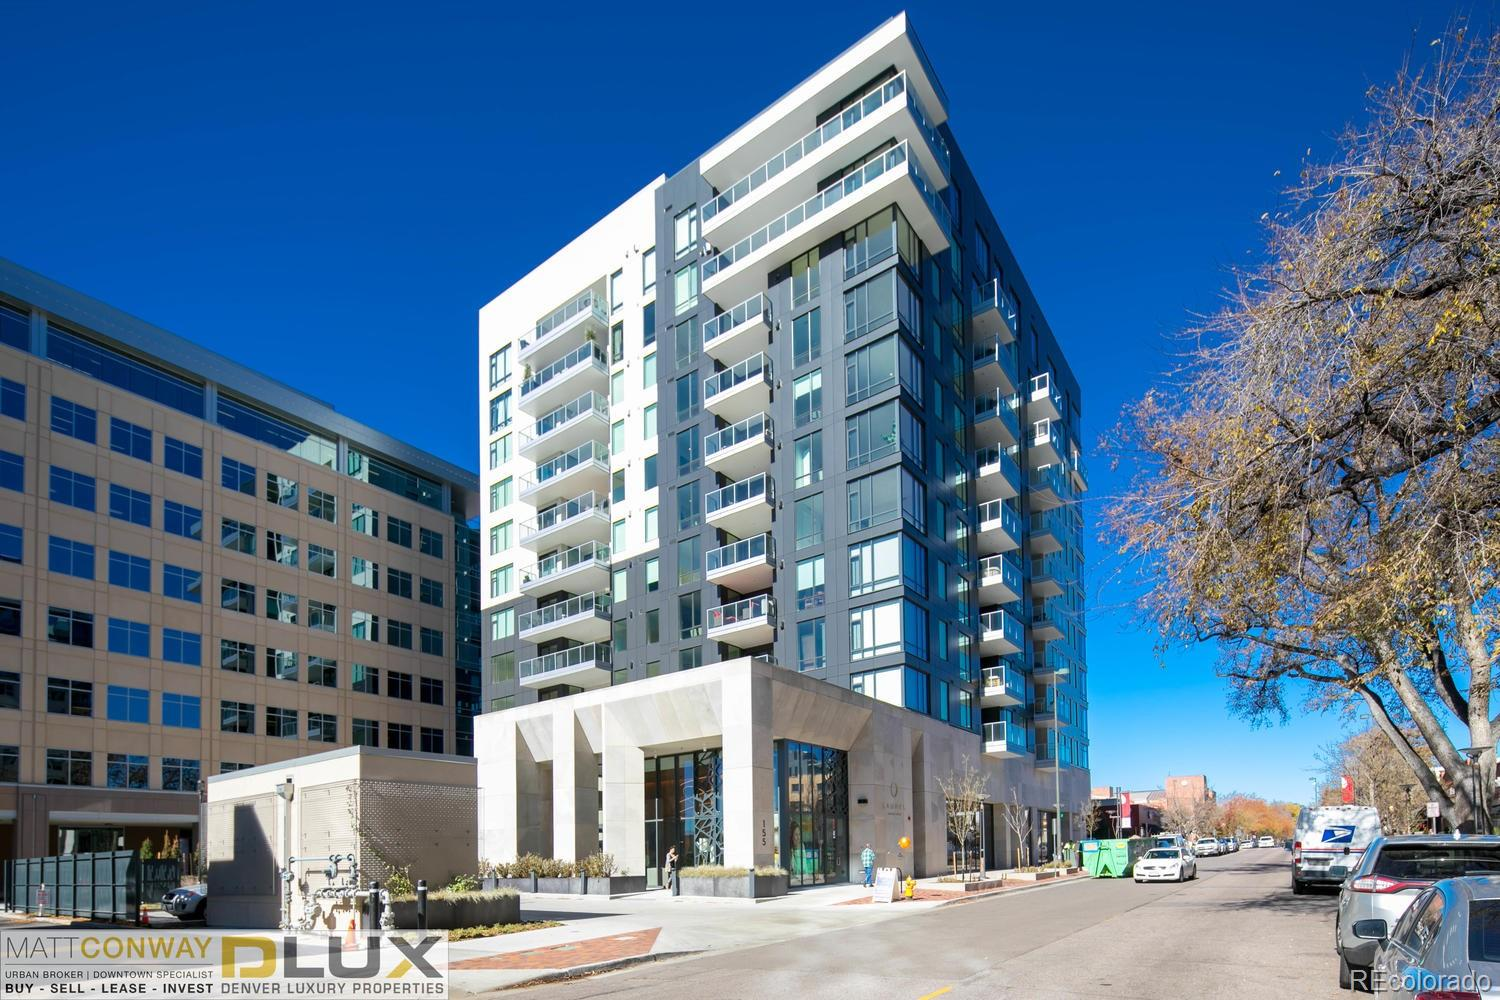 Photo of 155 N Steele Street  719, Denver, CO 80206